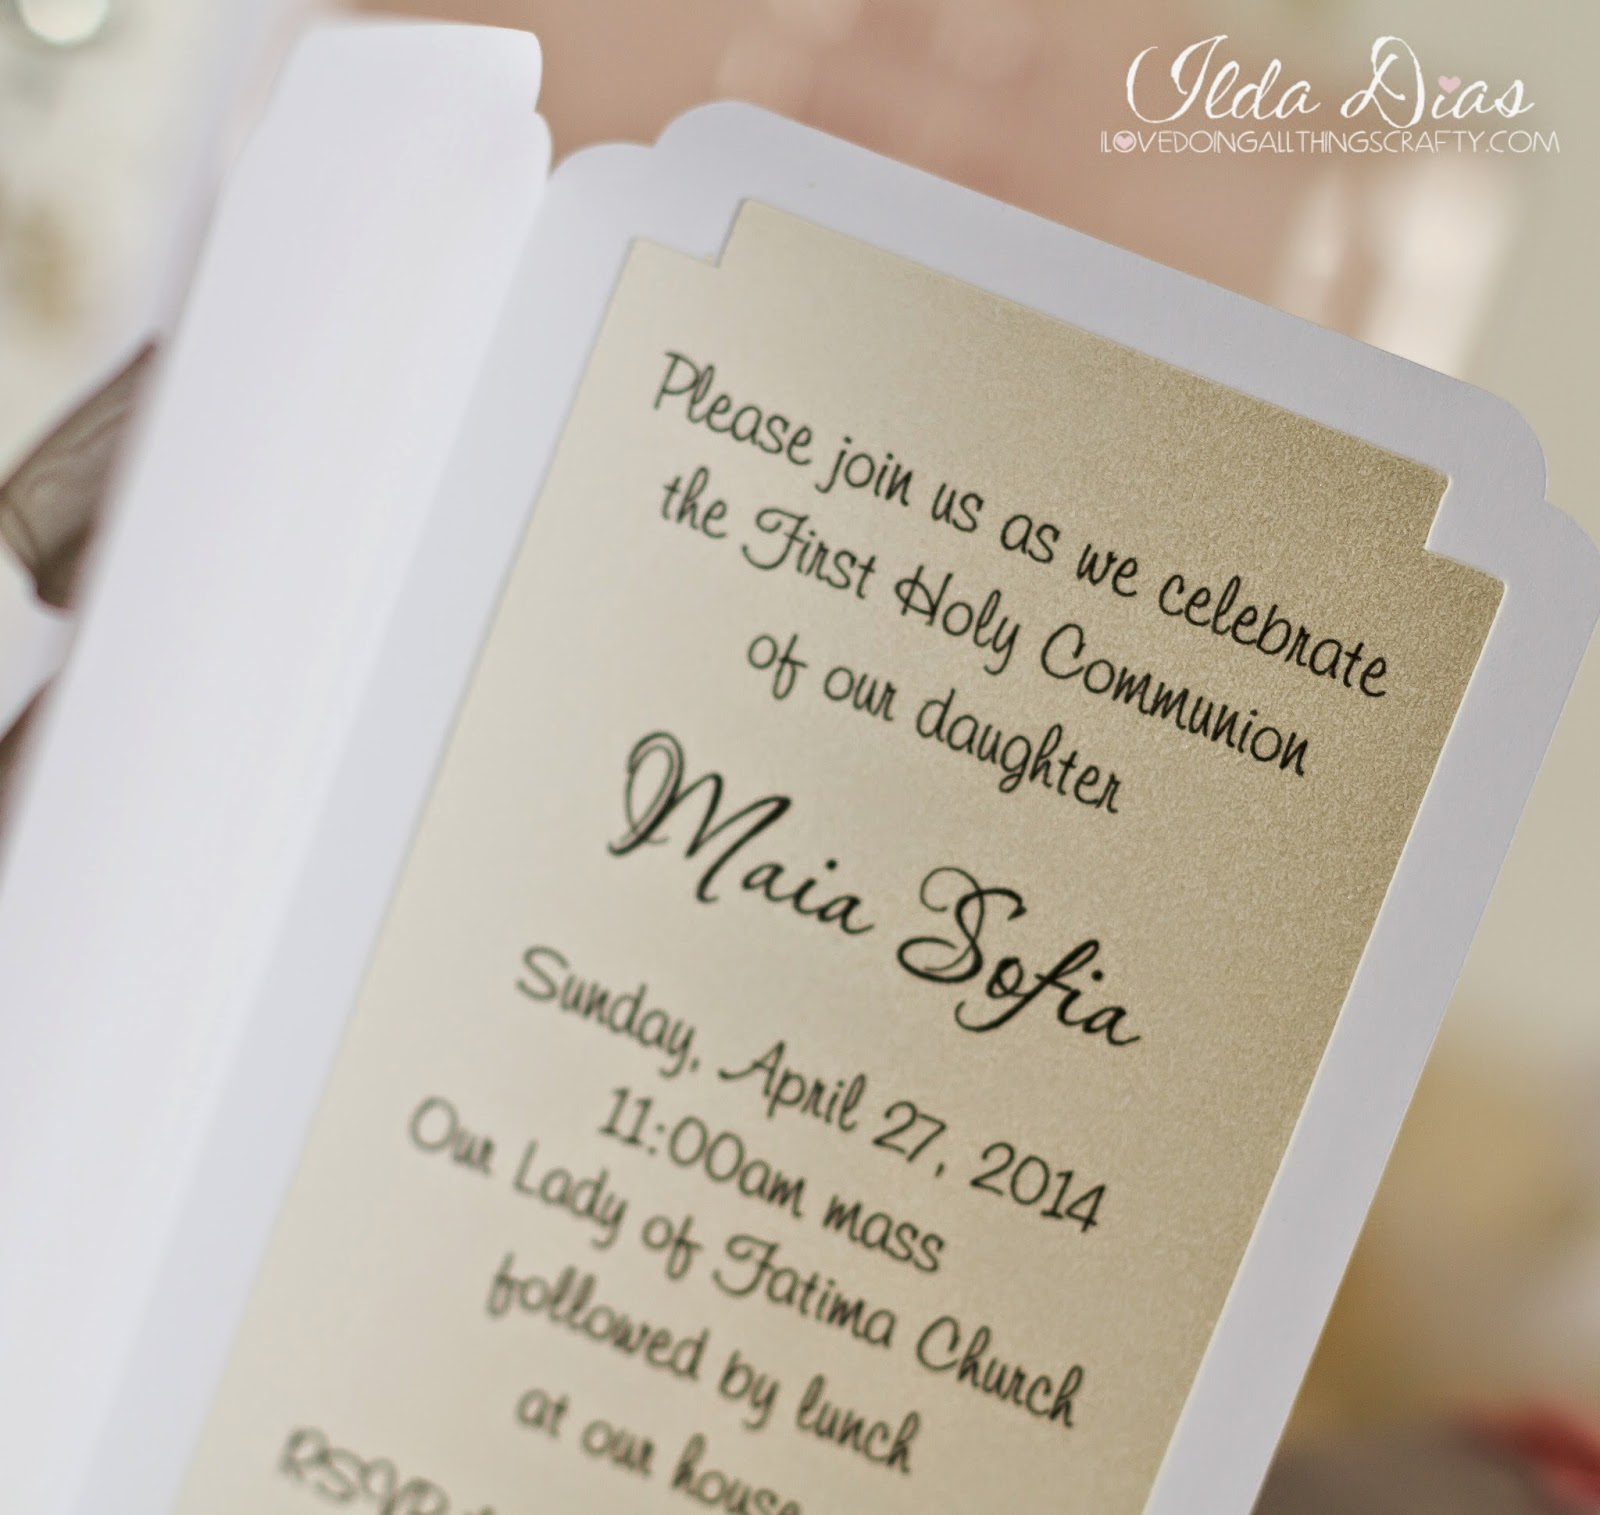 First Communion Day + DIY Decor, Invitations